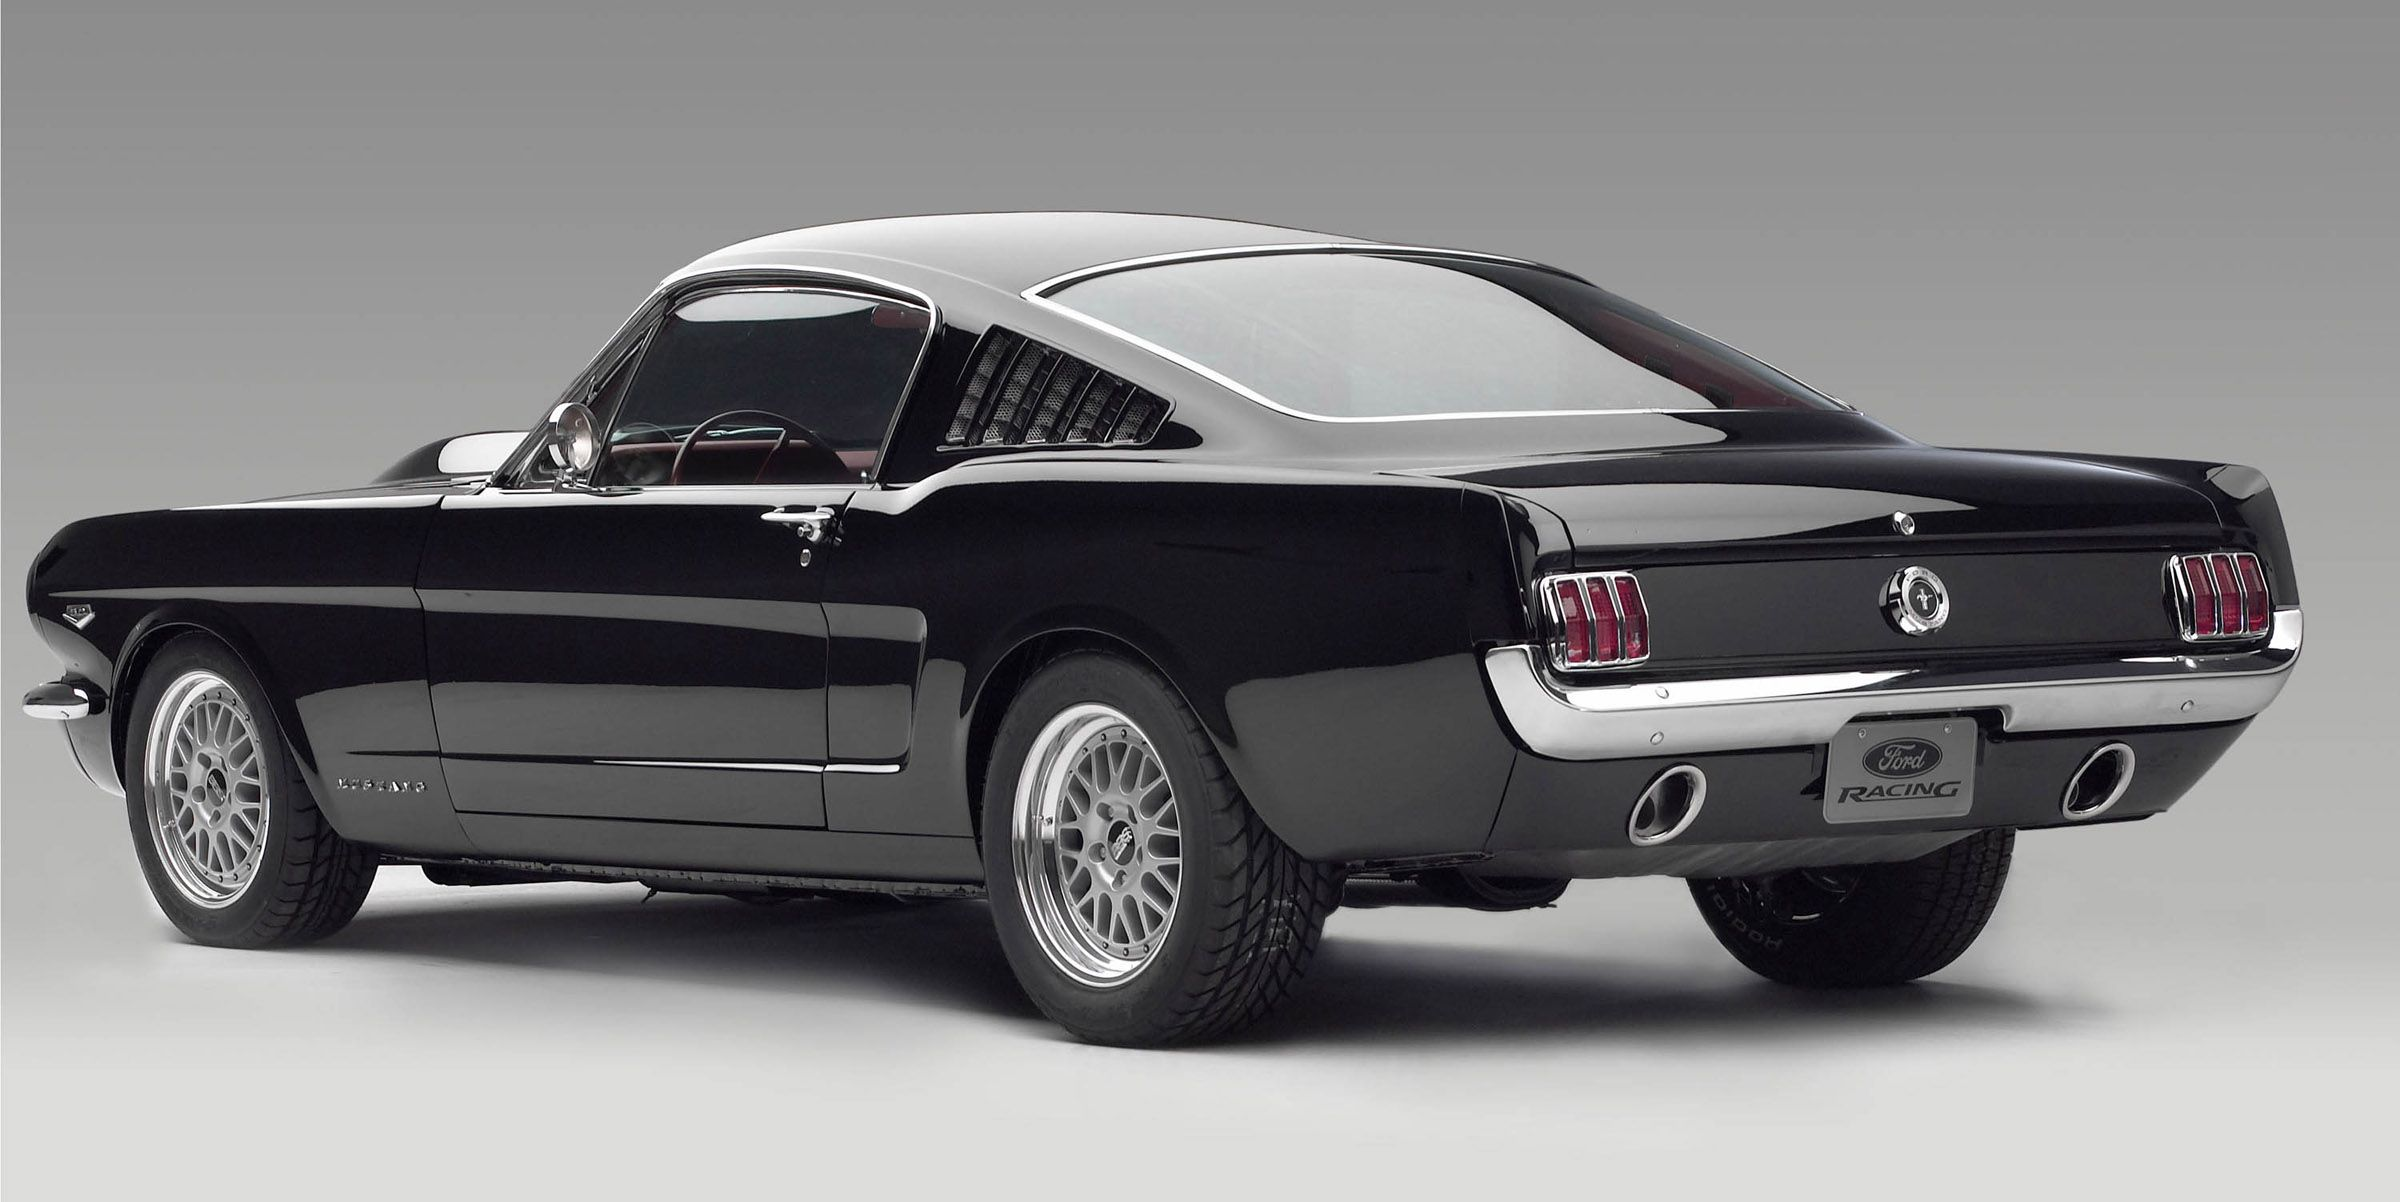 1965 Ford Mustang Fastback With Cammer Engine Picture 2 Mustang Fastback Ford Mustang Fastback Ford Mustang